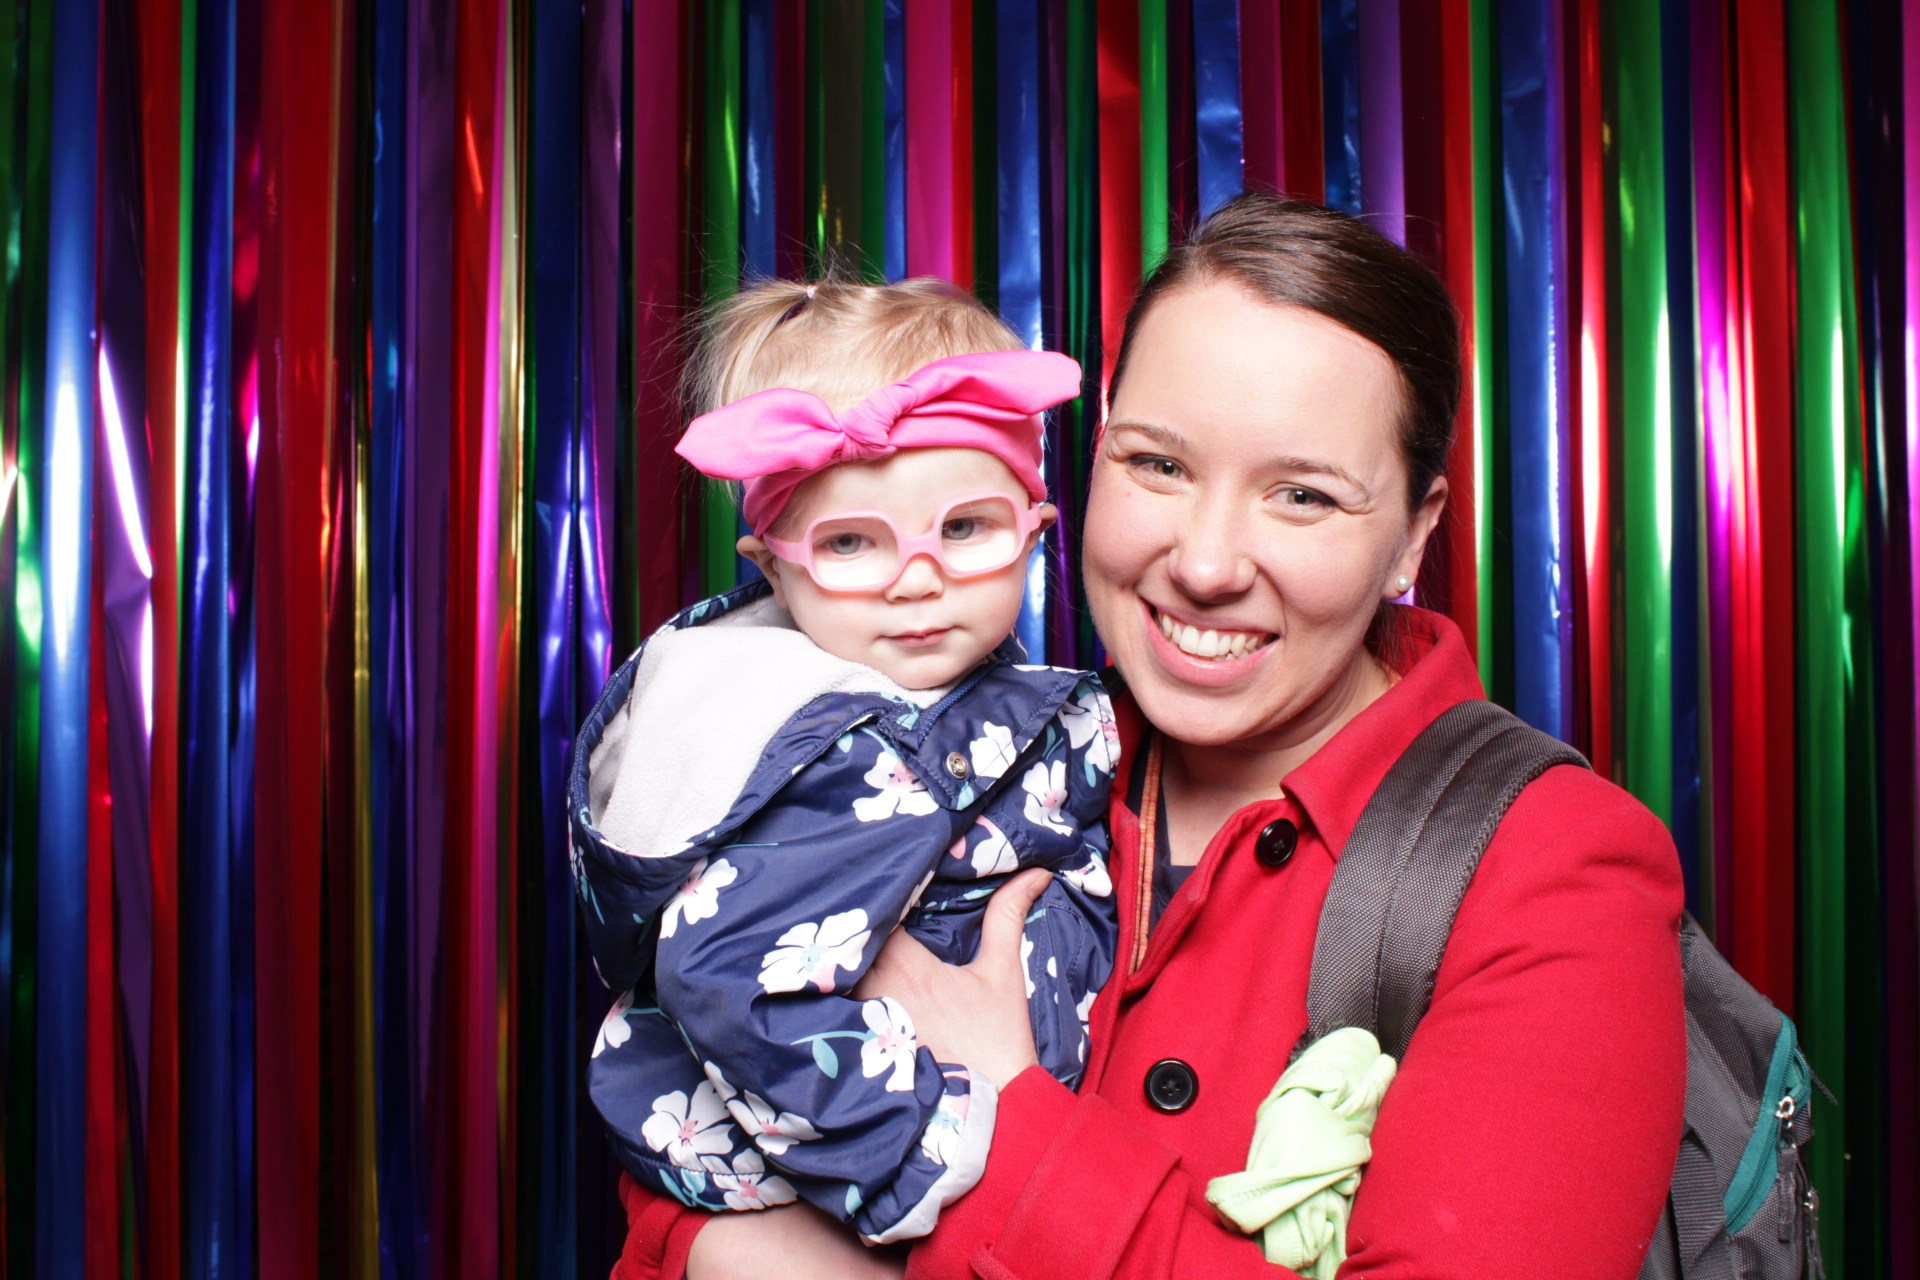 Minneapolis_corporate_Party_photo_booth_rental (7).jpg